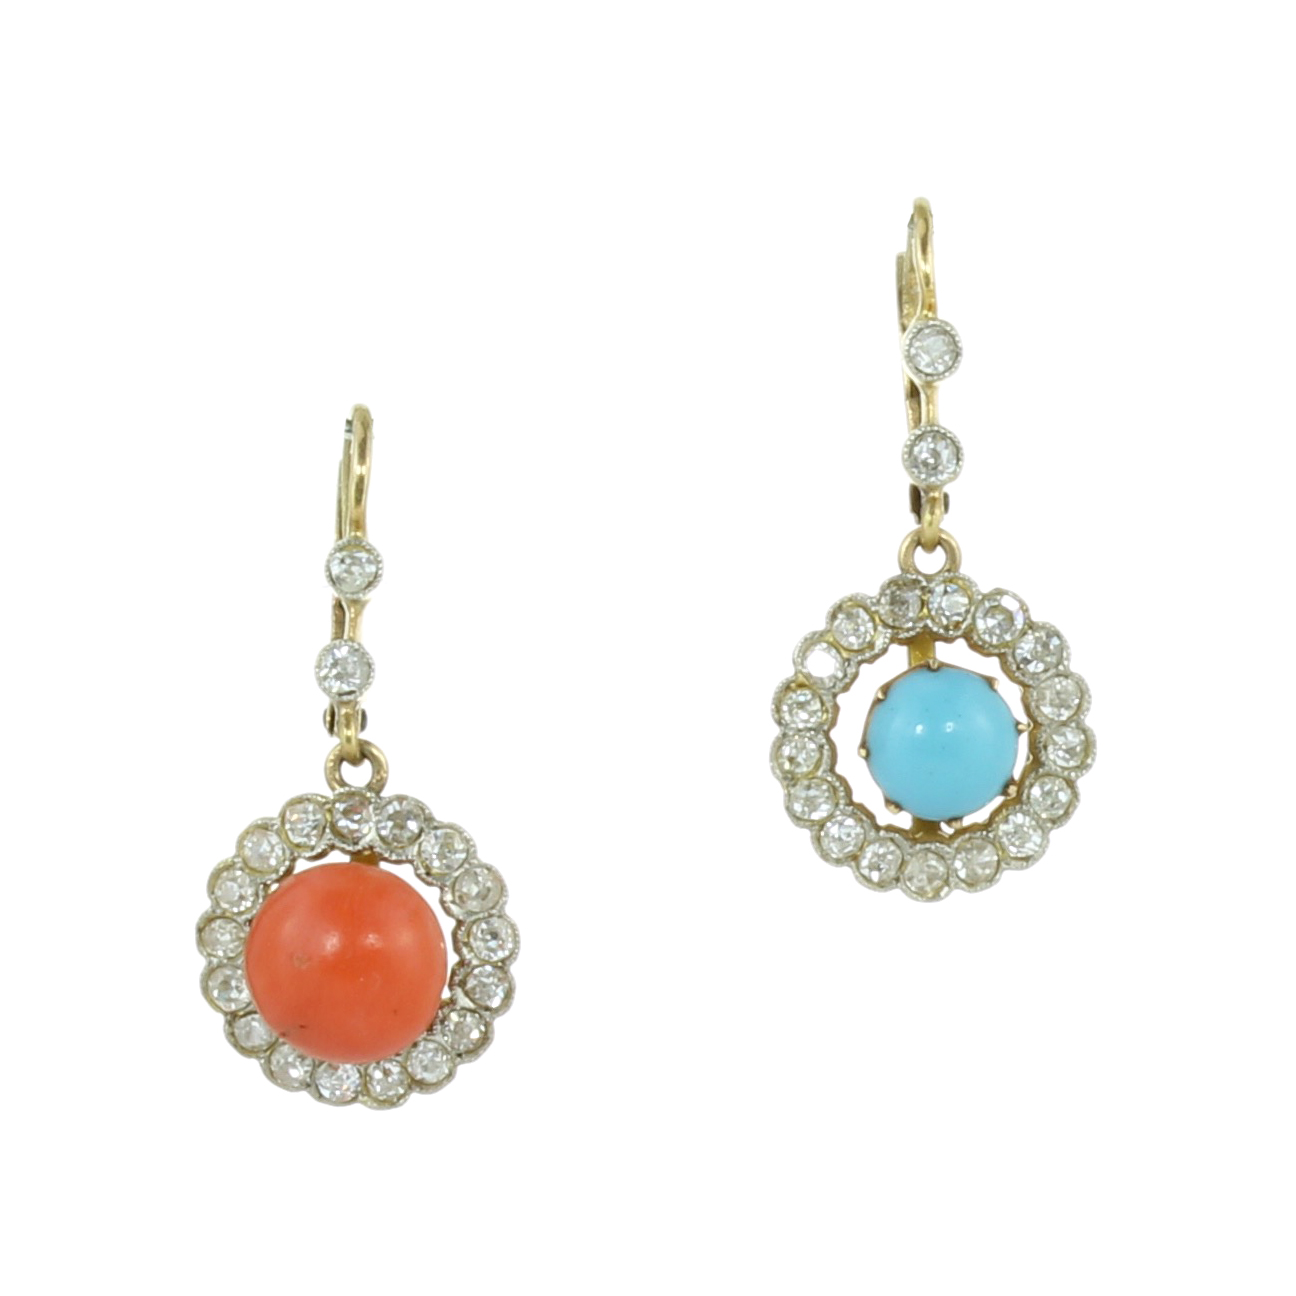 AN PAIR OF ANTIQUE INTERCHANGEABLE CORAL / TURQUOISE AND DIAMOND CLUSTER EARRINGS in high carat